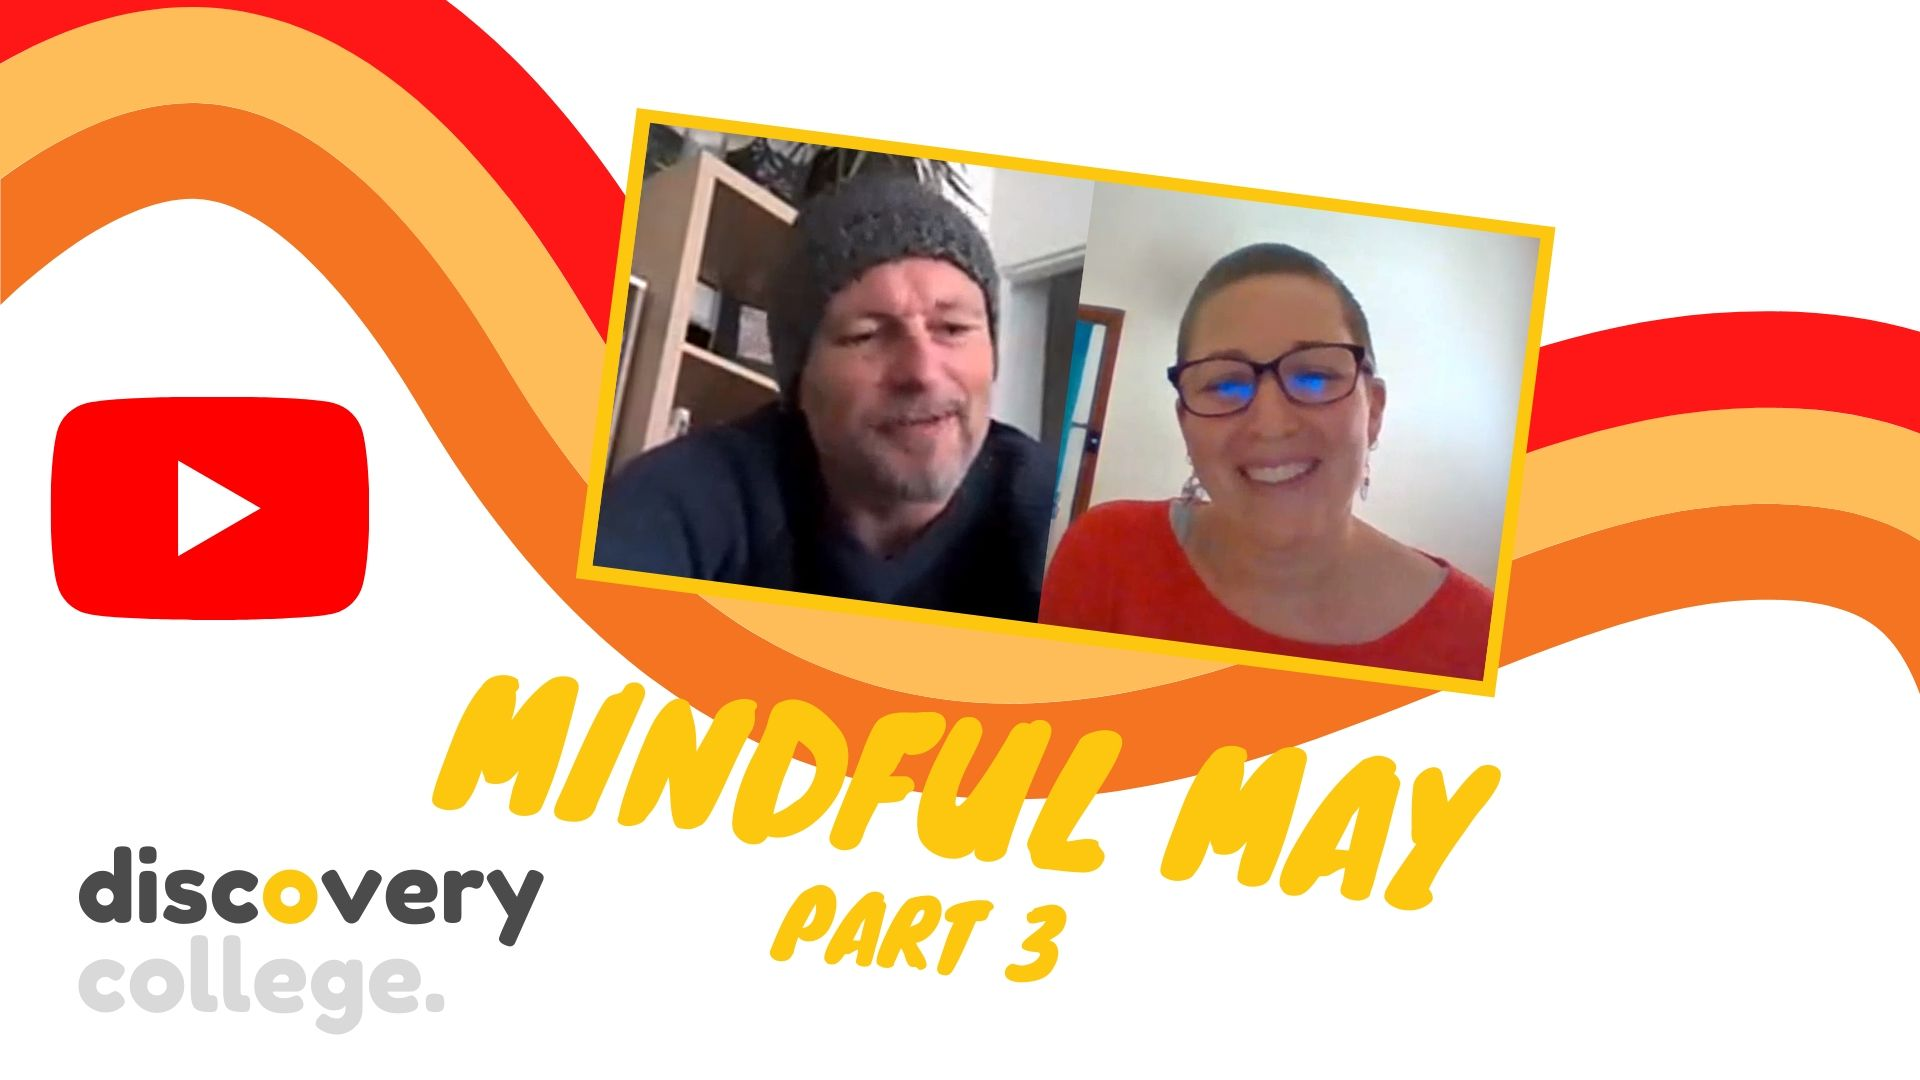 This discovery convo is part three for Mindful May